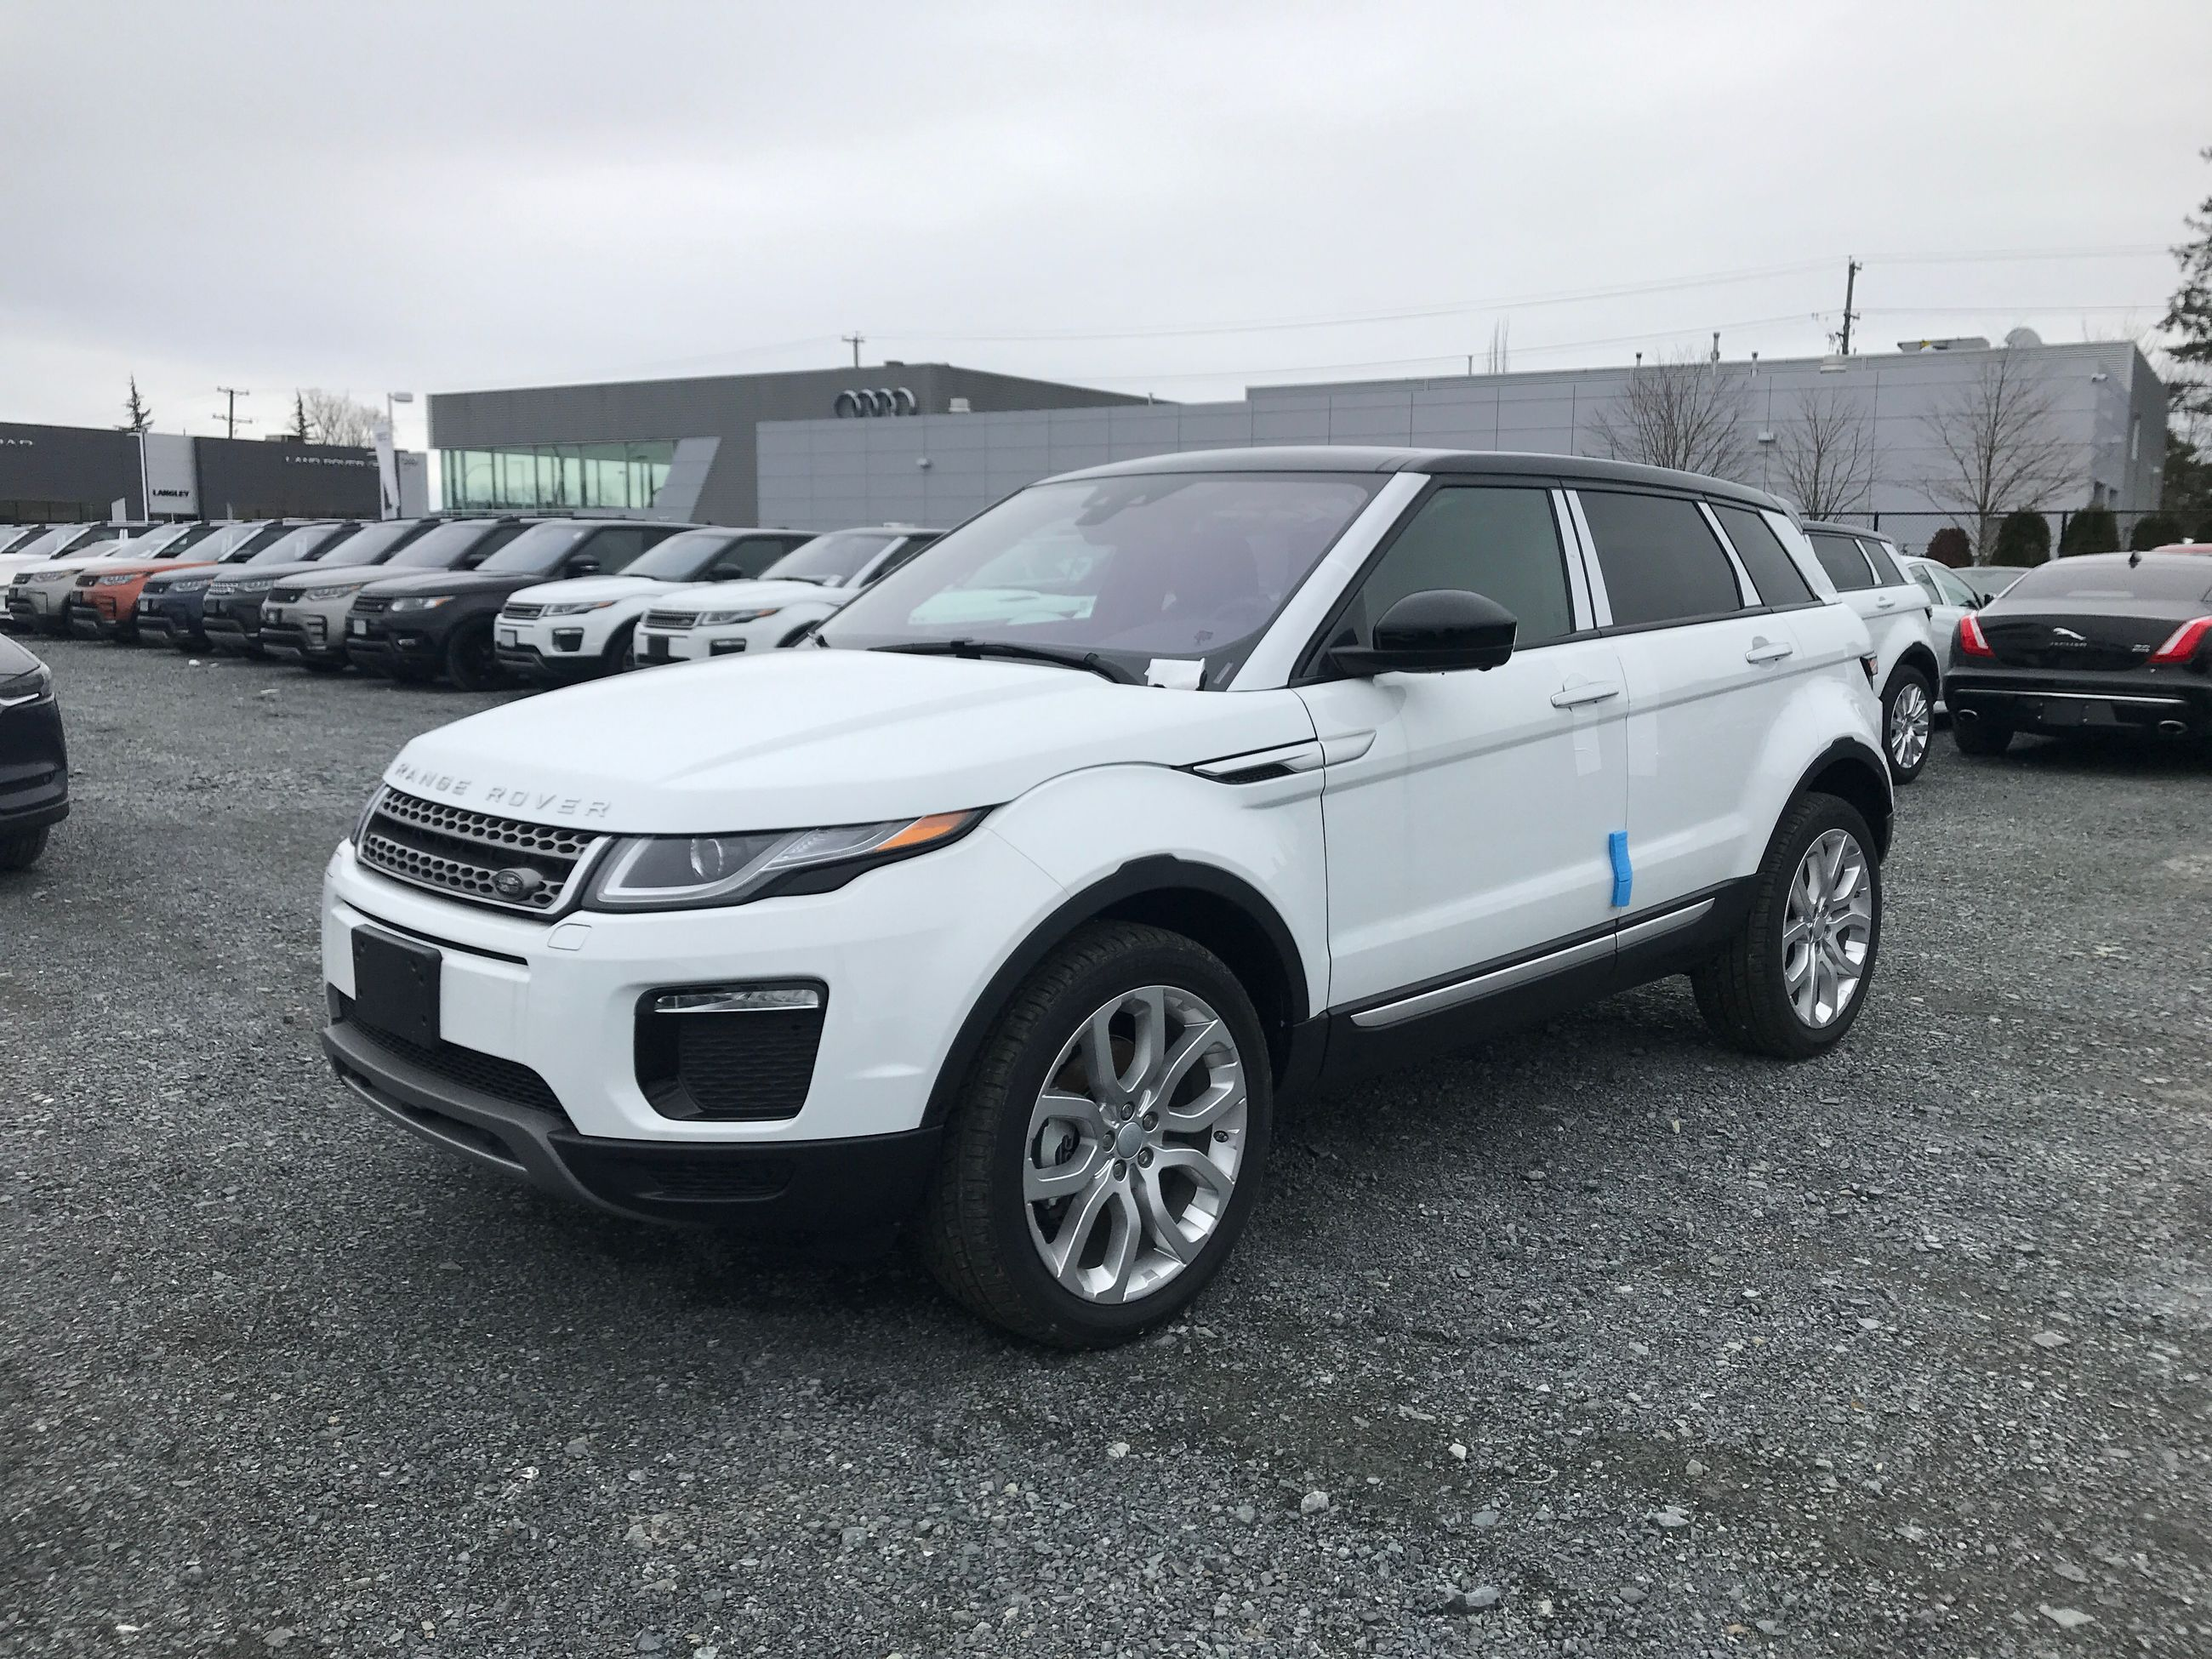 Landrover Range New 2019 Land Rover Range Rover Evoque 237hp Hse 64000 Land